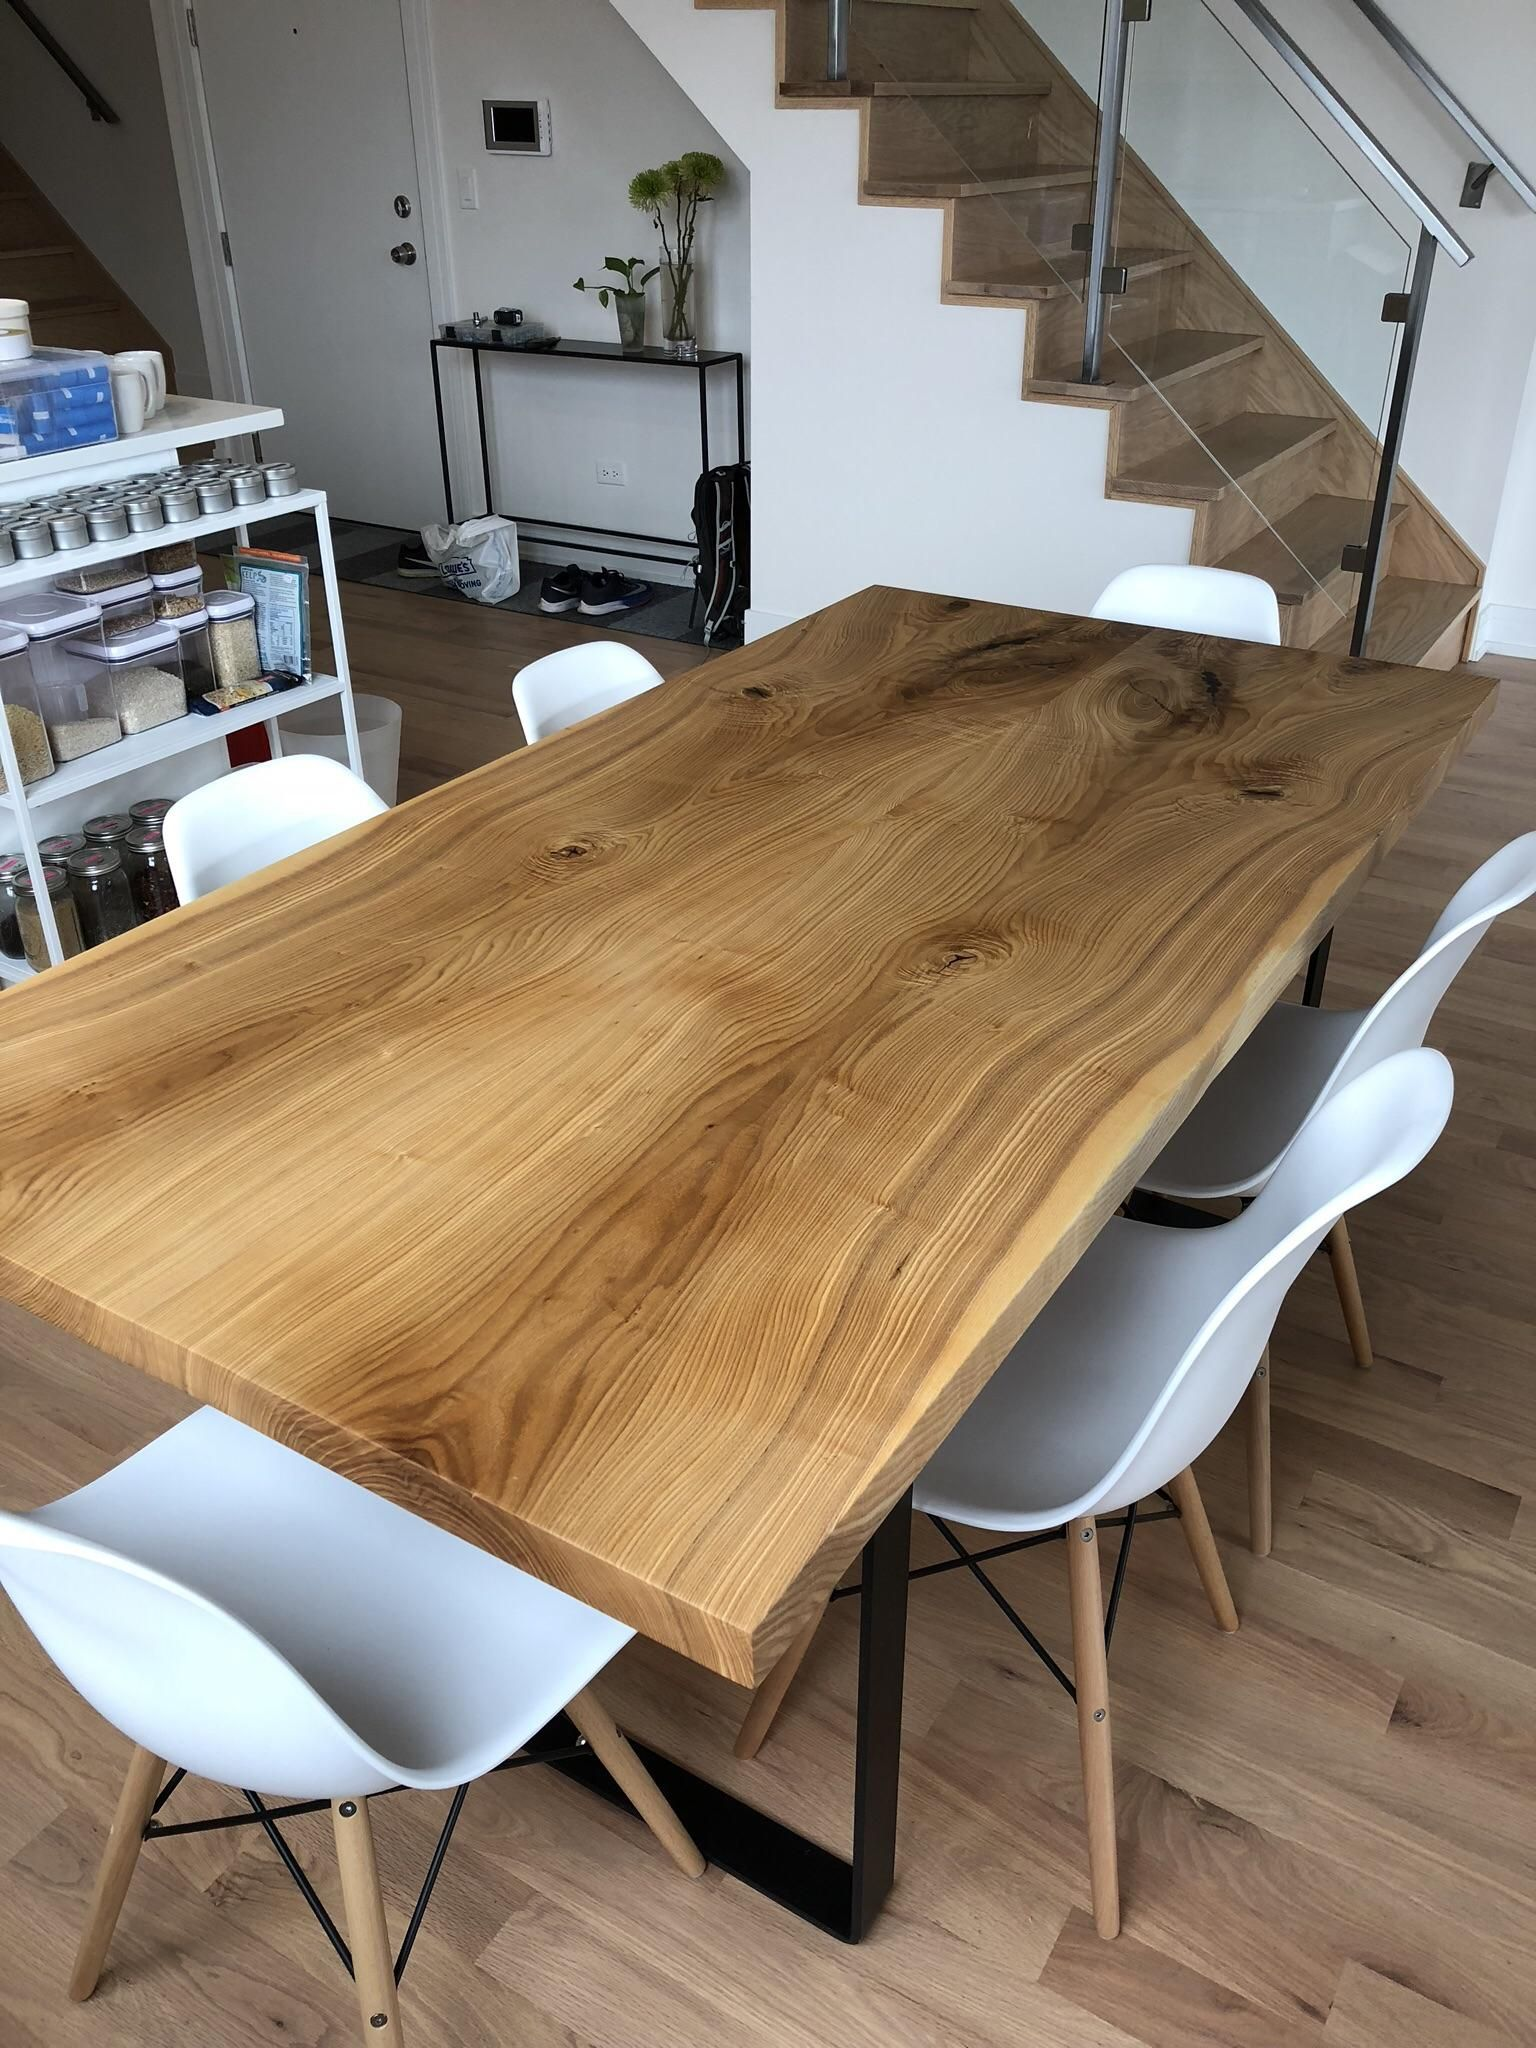 Bookmatched Ash Not Live Edge Slab Dining Table Build Album In Comments Http Slab Dining Room Table Live Edge Table Dining Rooms Live Edge Slab Dining Table